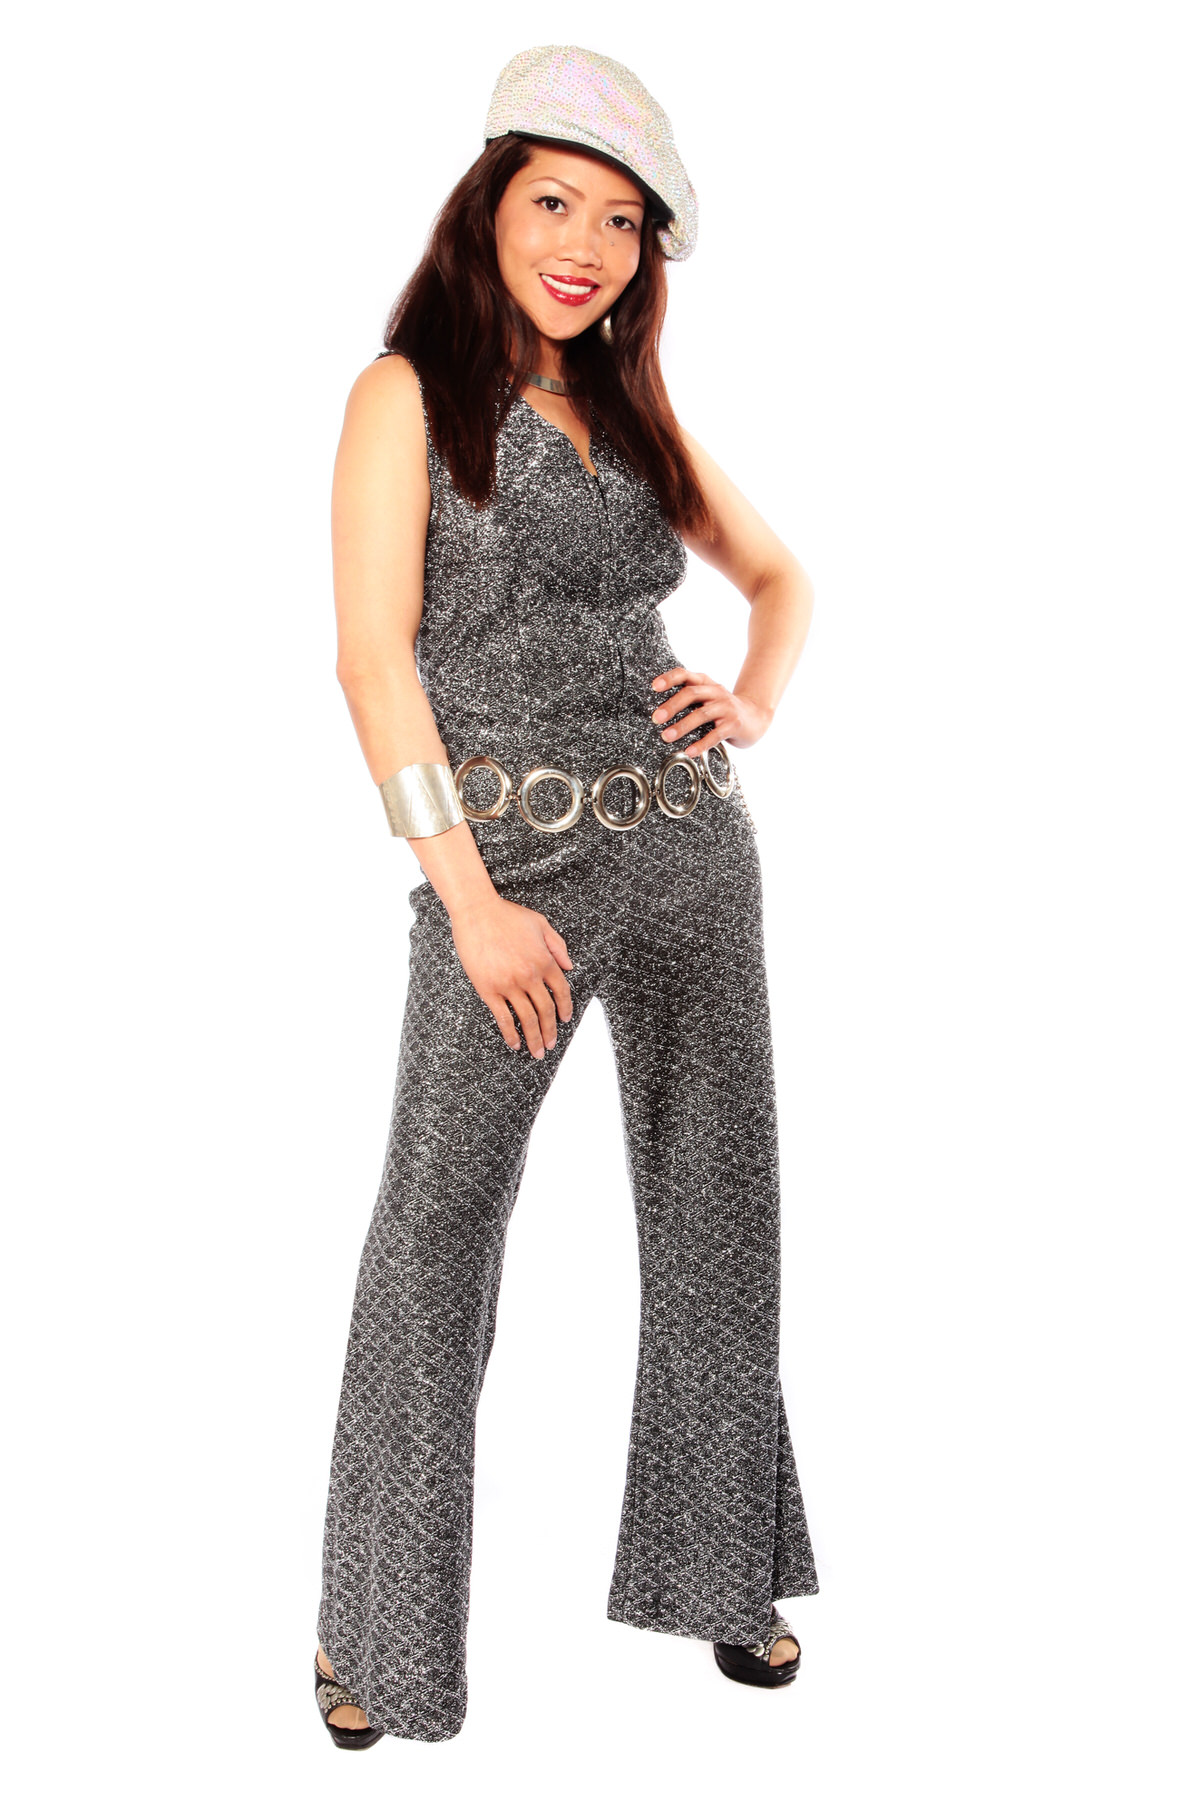 SILVER FLARED SPARKLY CATSUIT W SILVER CHAIN BELT